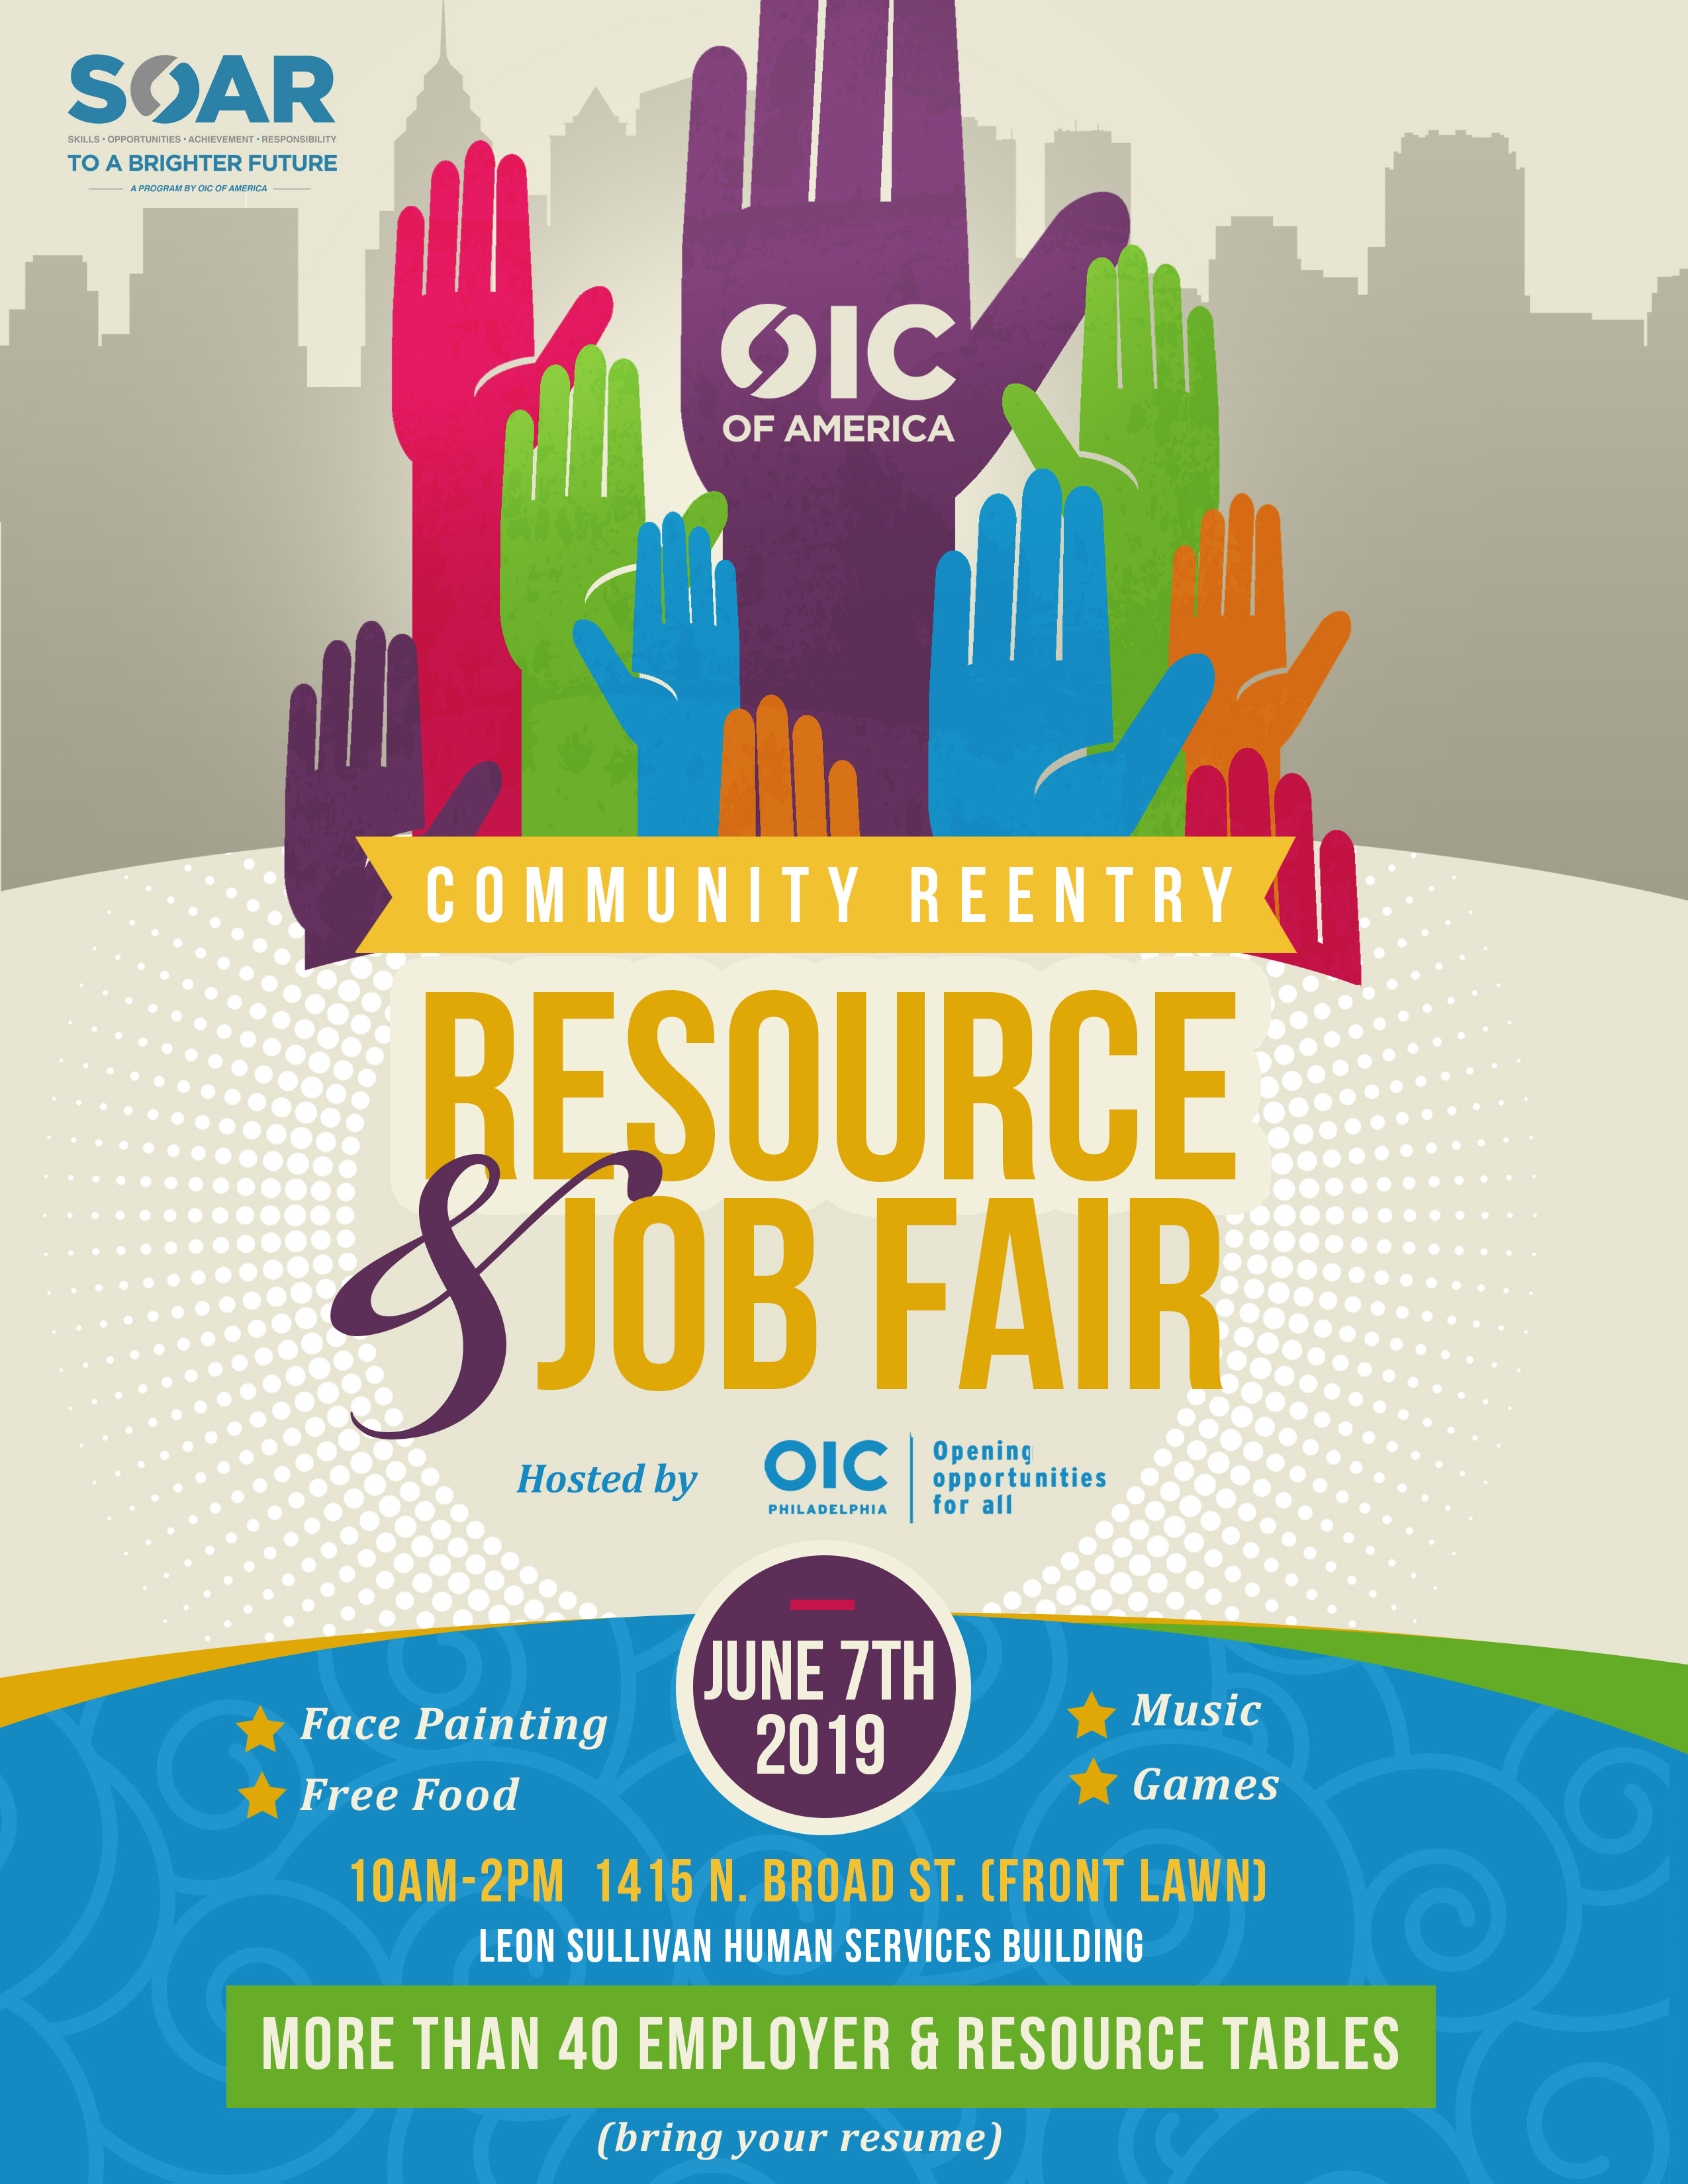 OICA Community Reentry Resource & Job Fair